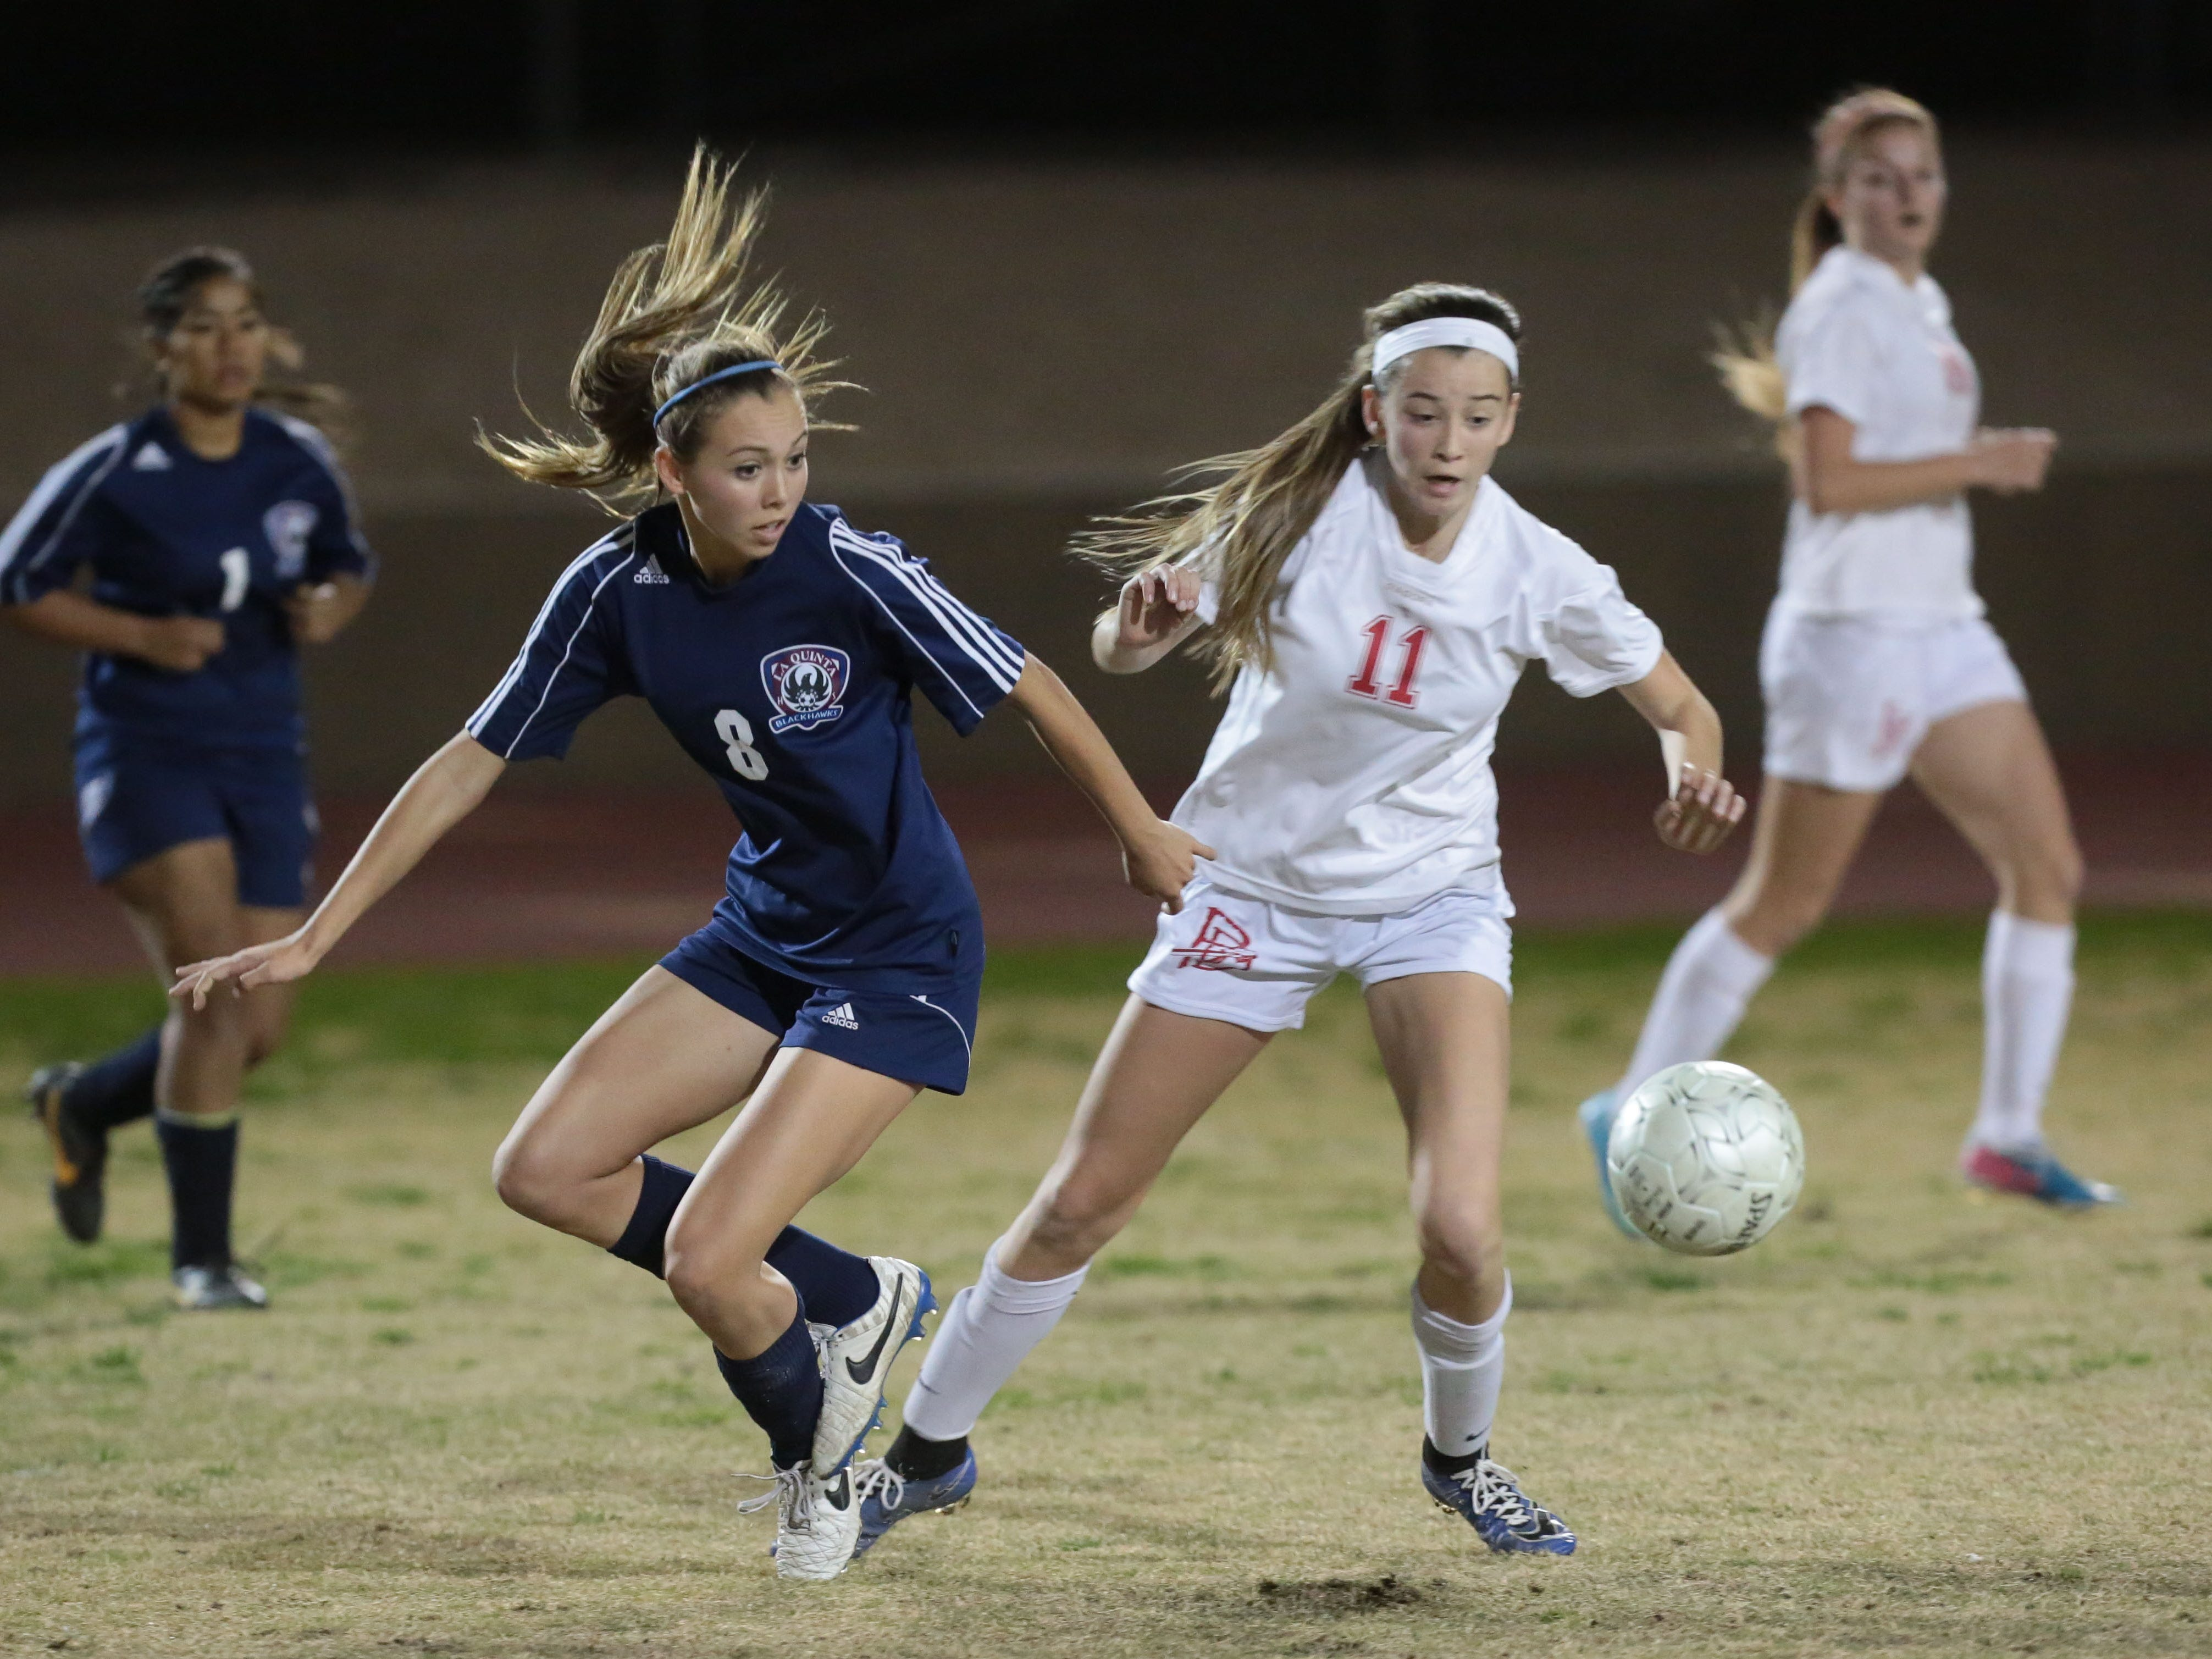 La Quinta's Jaylene Manion and Palm Desert's Alyssa Granados fight for the ball in the first half Wednesday in Palm Desert. The Blackhawks won 1-0.